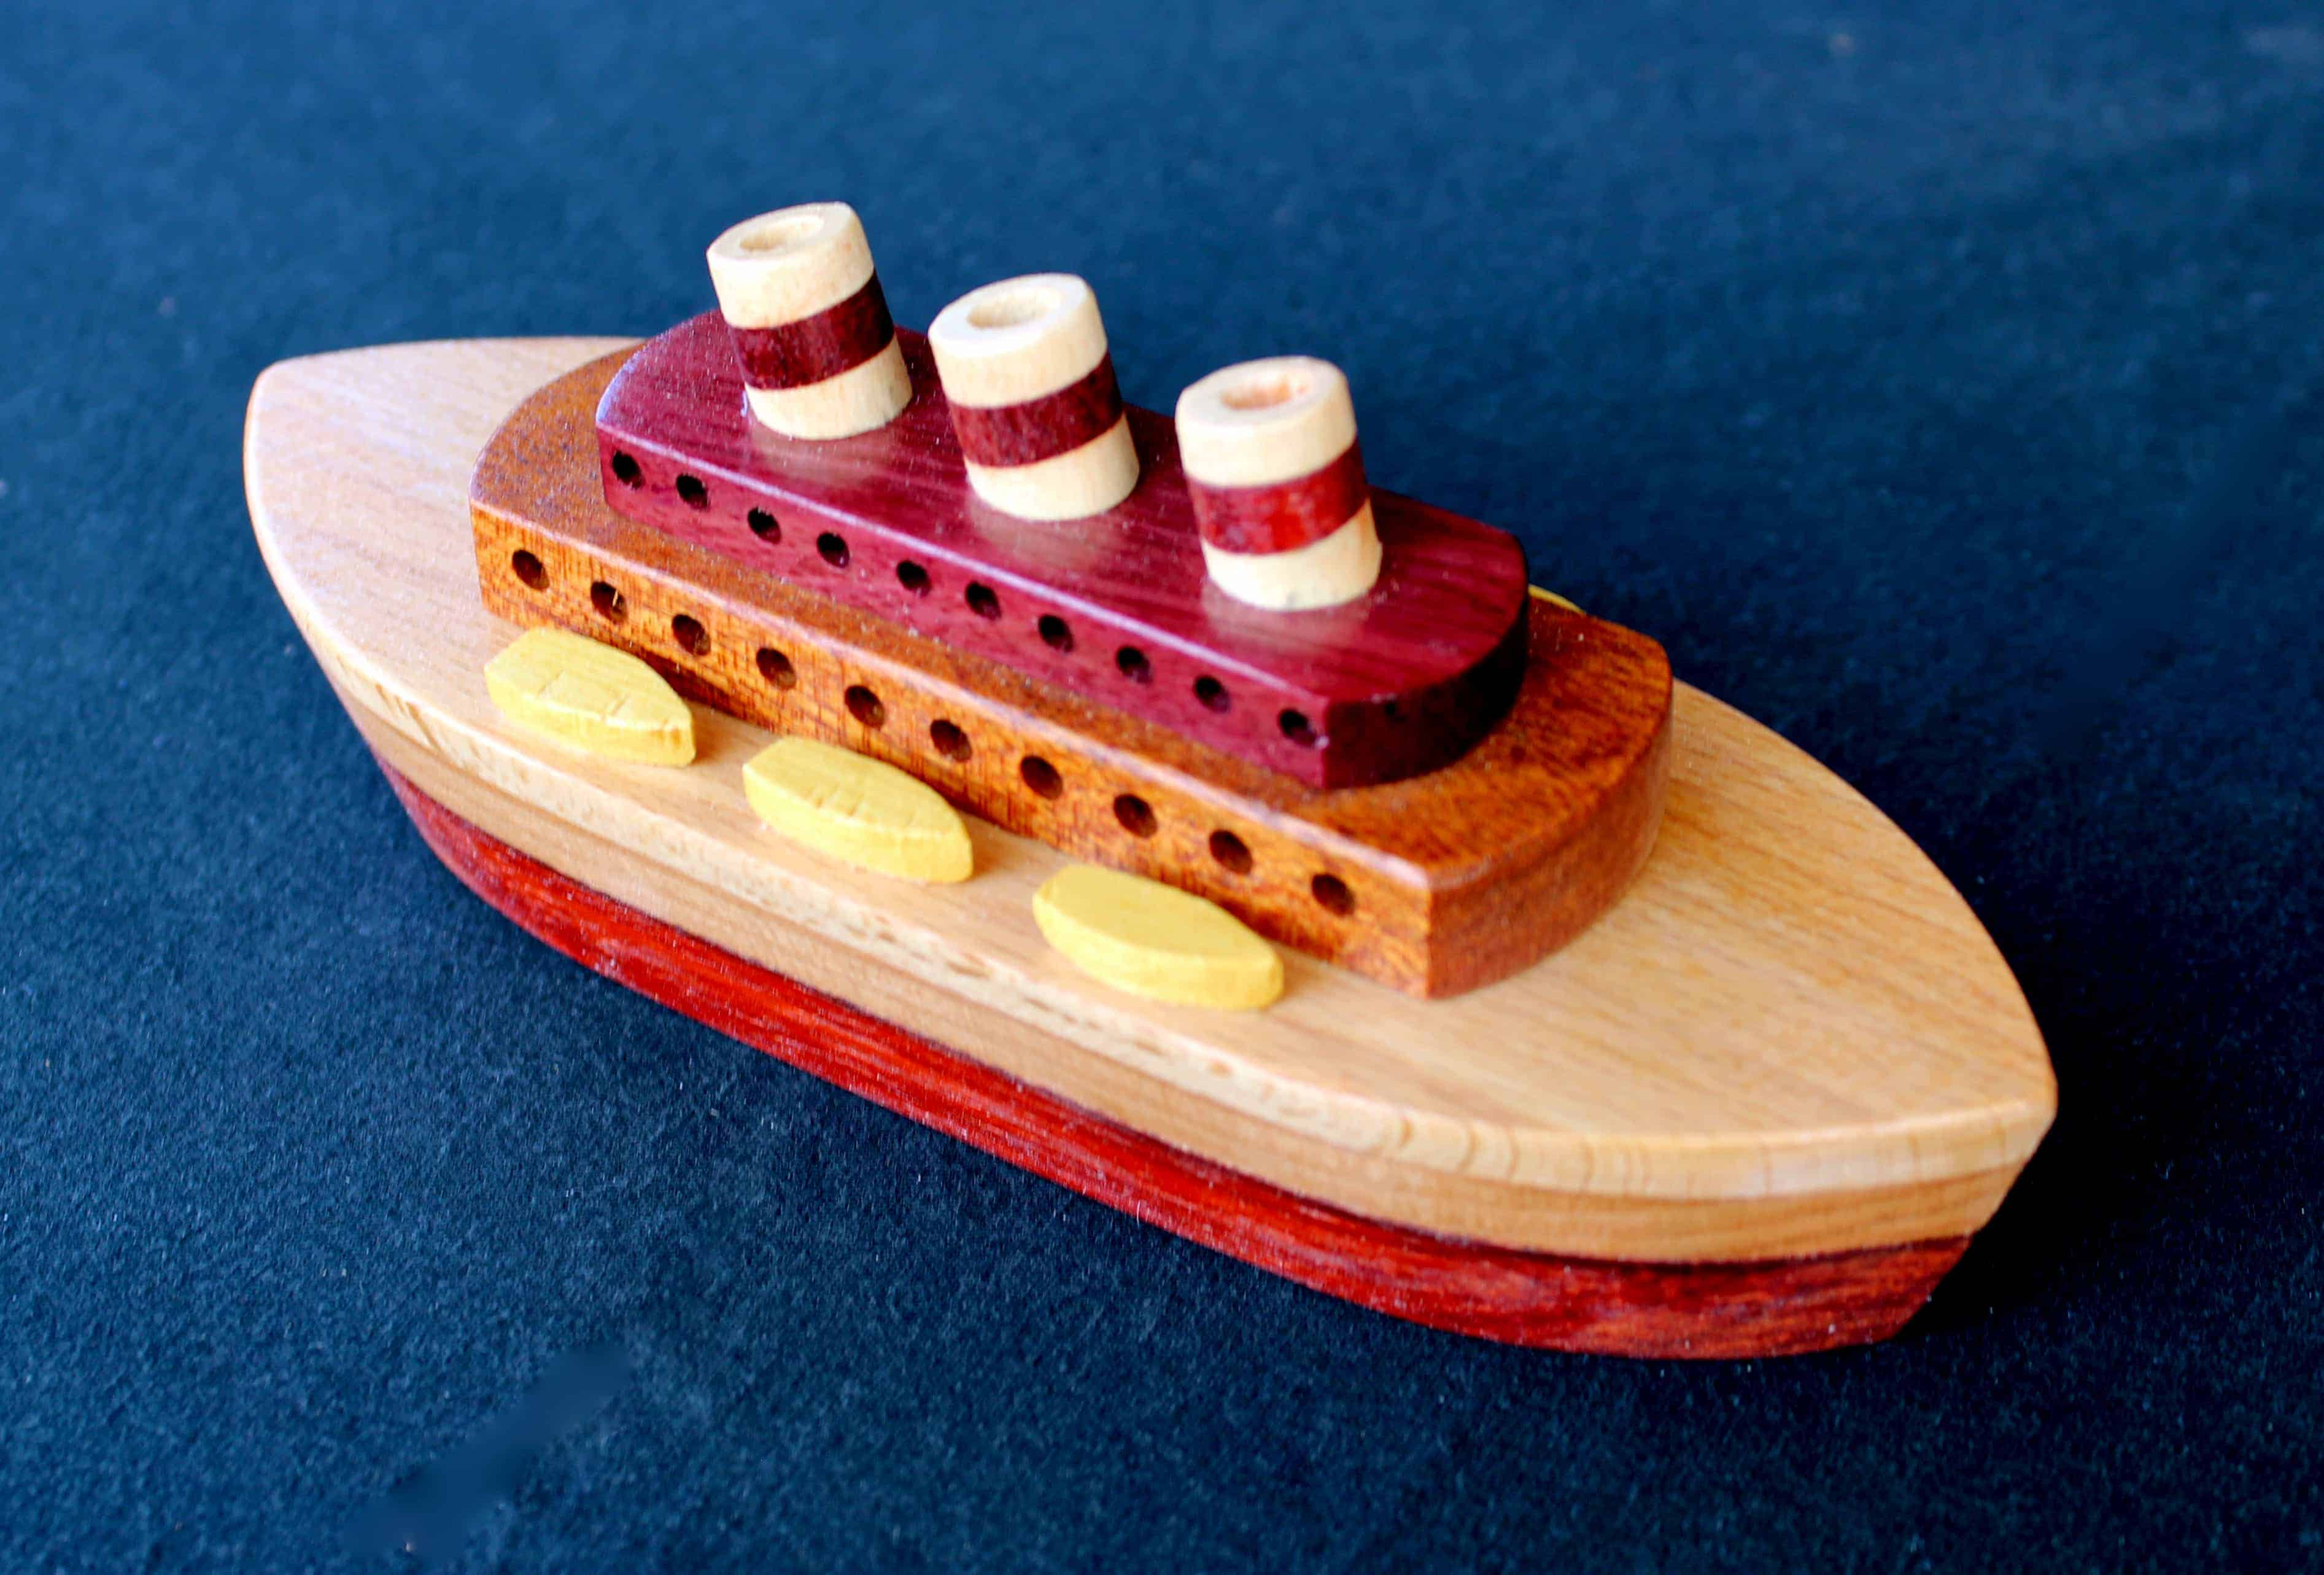 Woodworking plan for a ship from the Plump'N'Tuff group